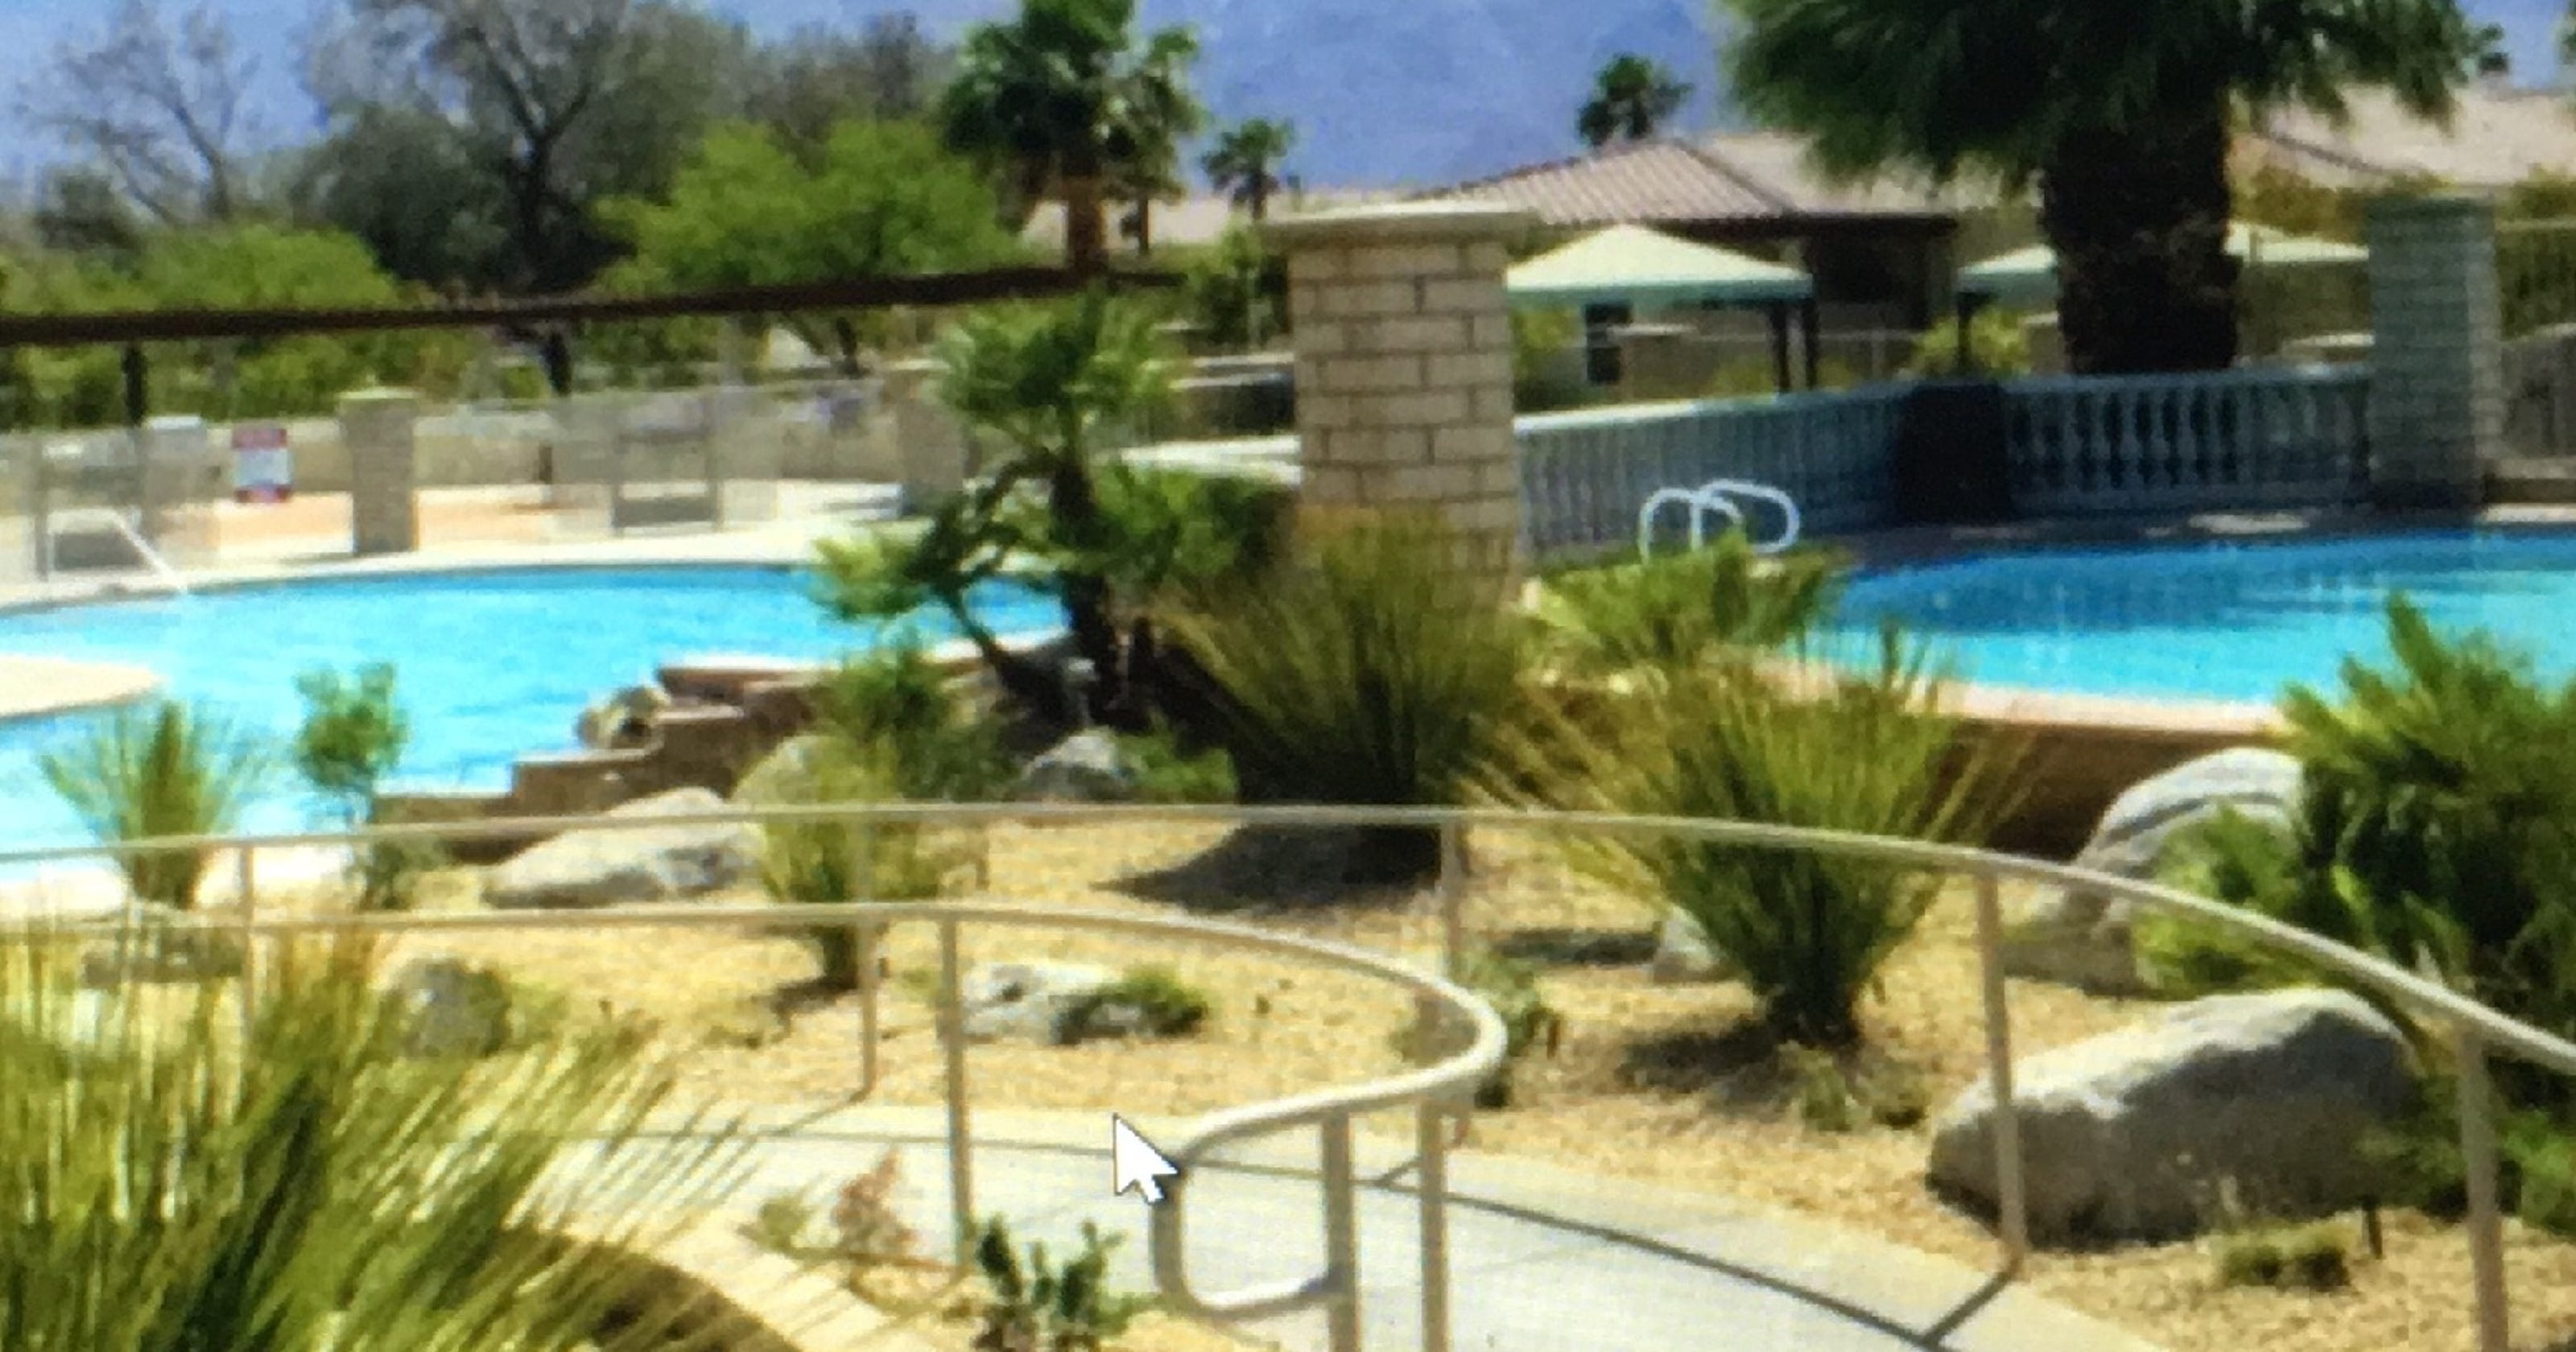 Legionnaires 39 forces palm springs community to close pools - Legionnaires disease swimming pool ...